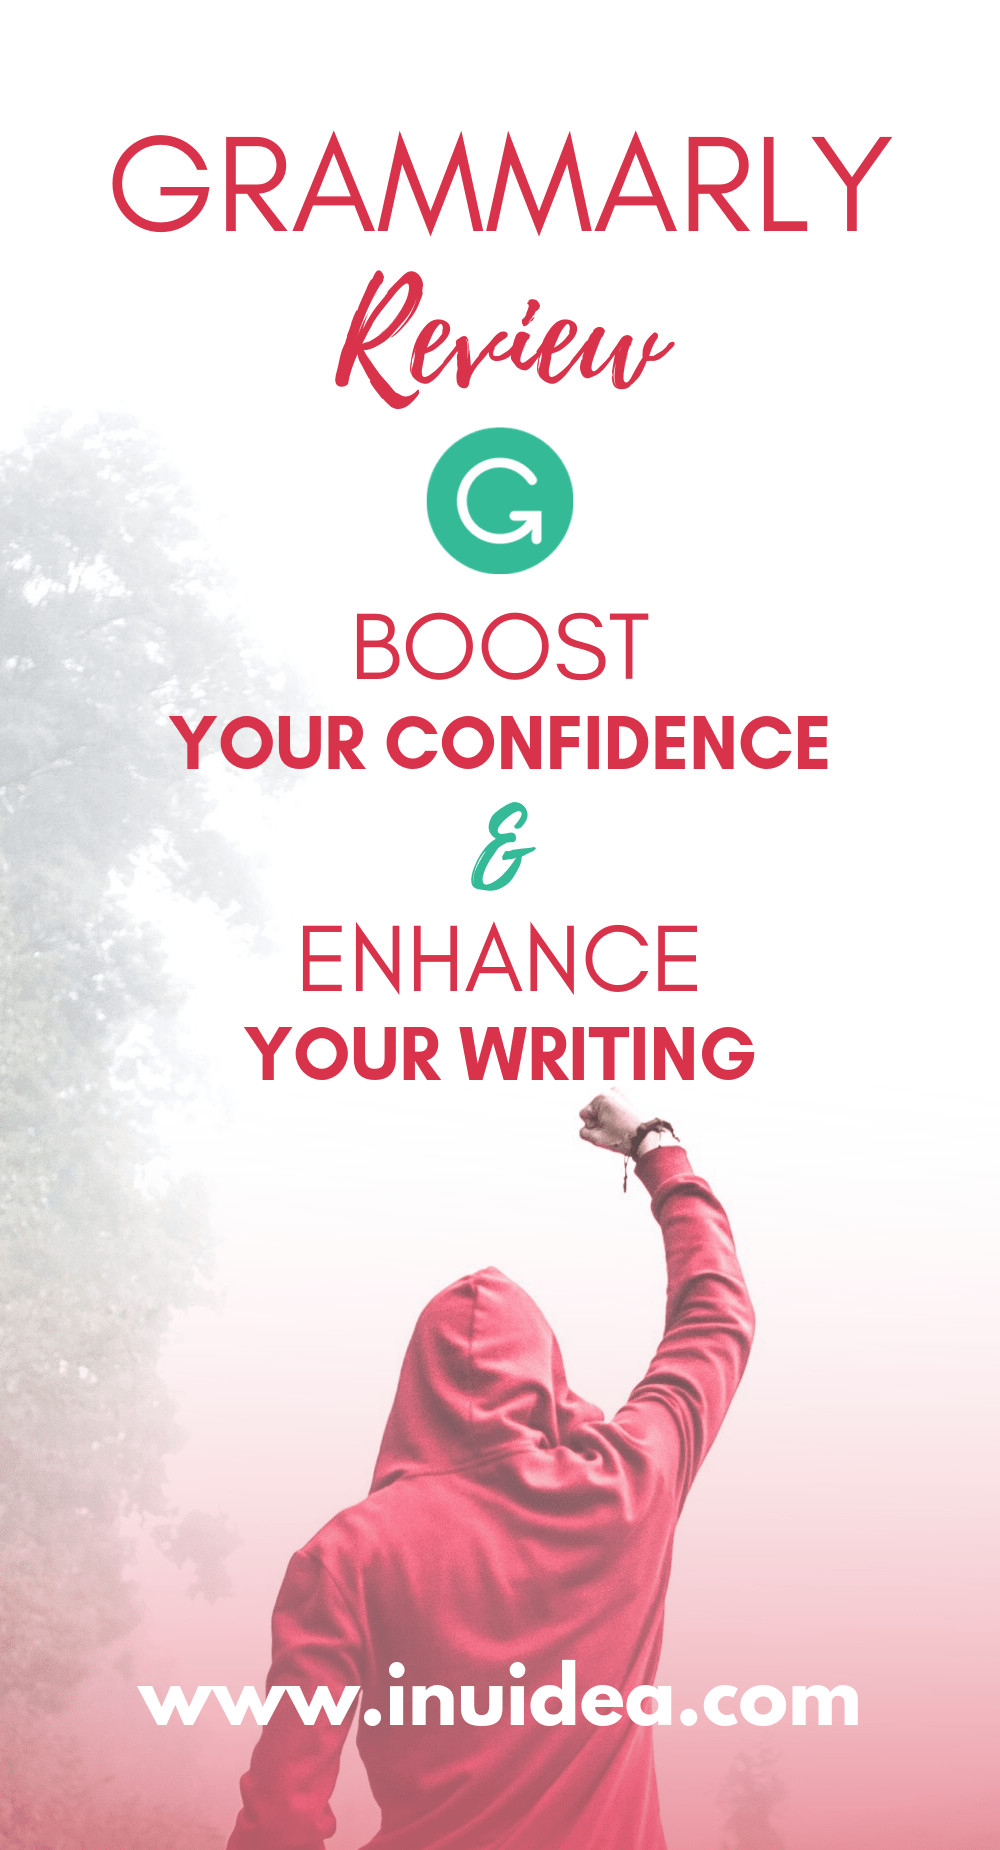 Cheap Amazon Grammarly Proofreading Software